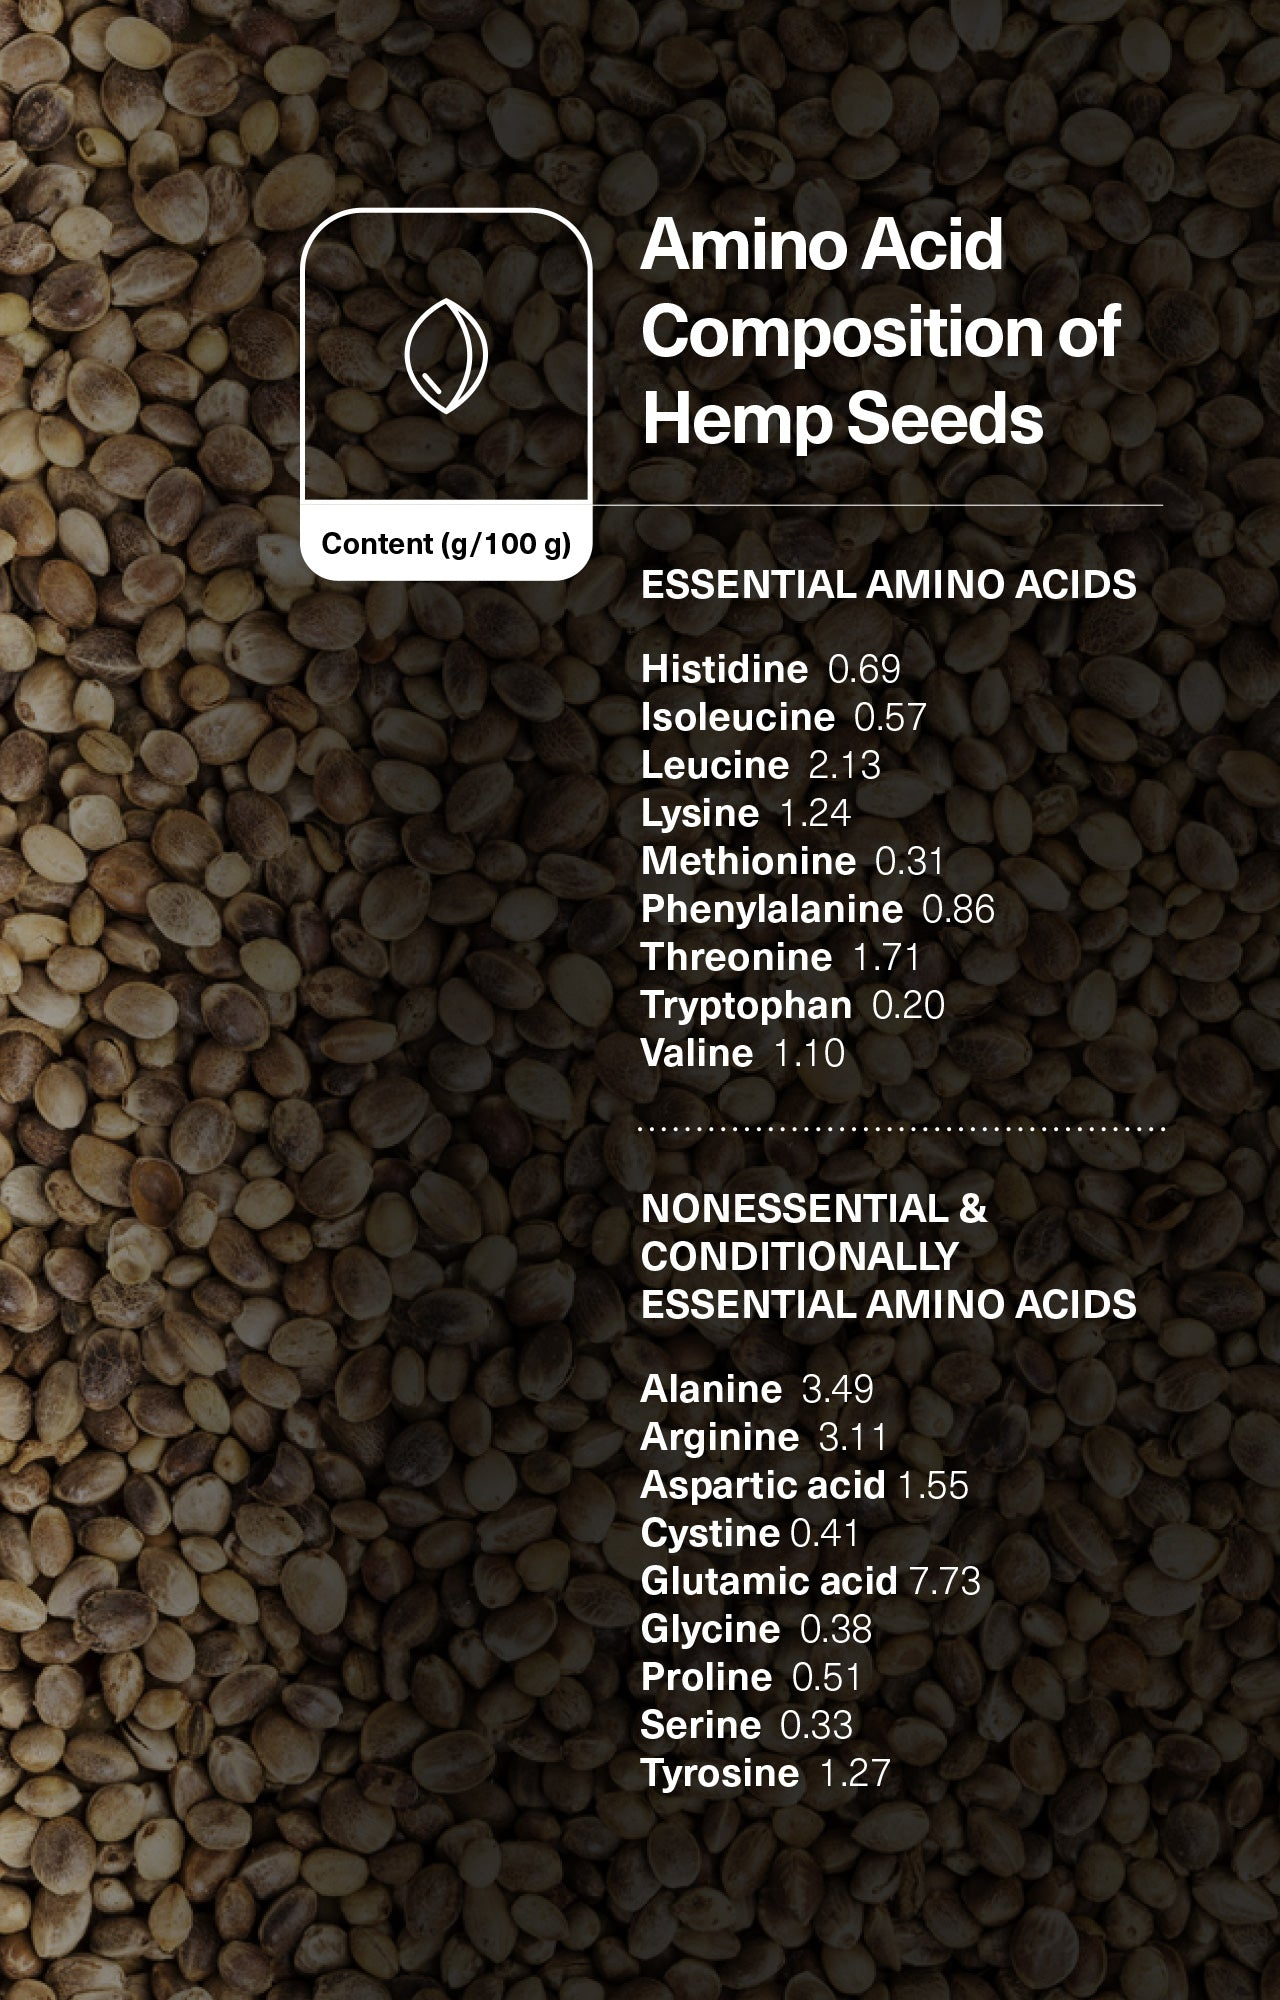 Amino Acid Composition of Hemp Seeds